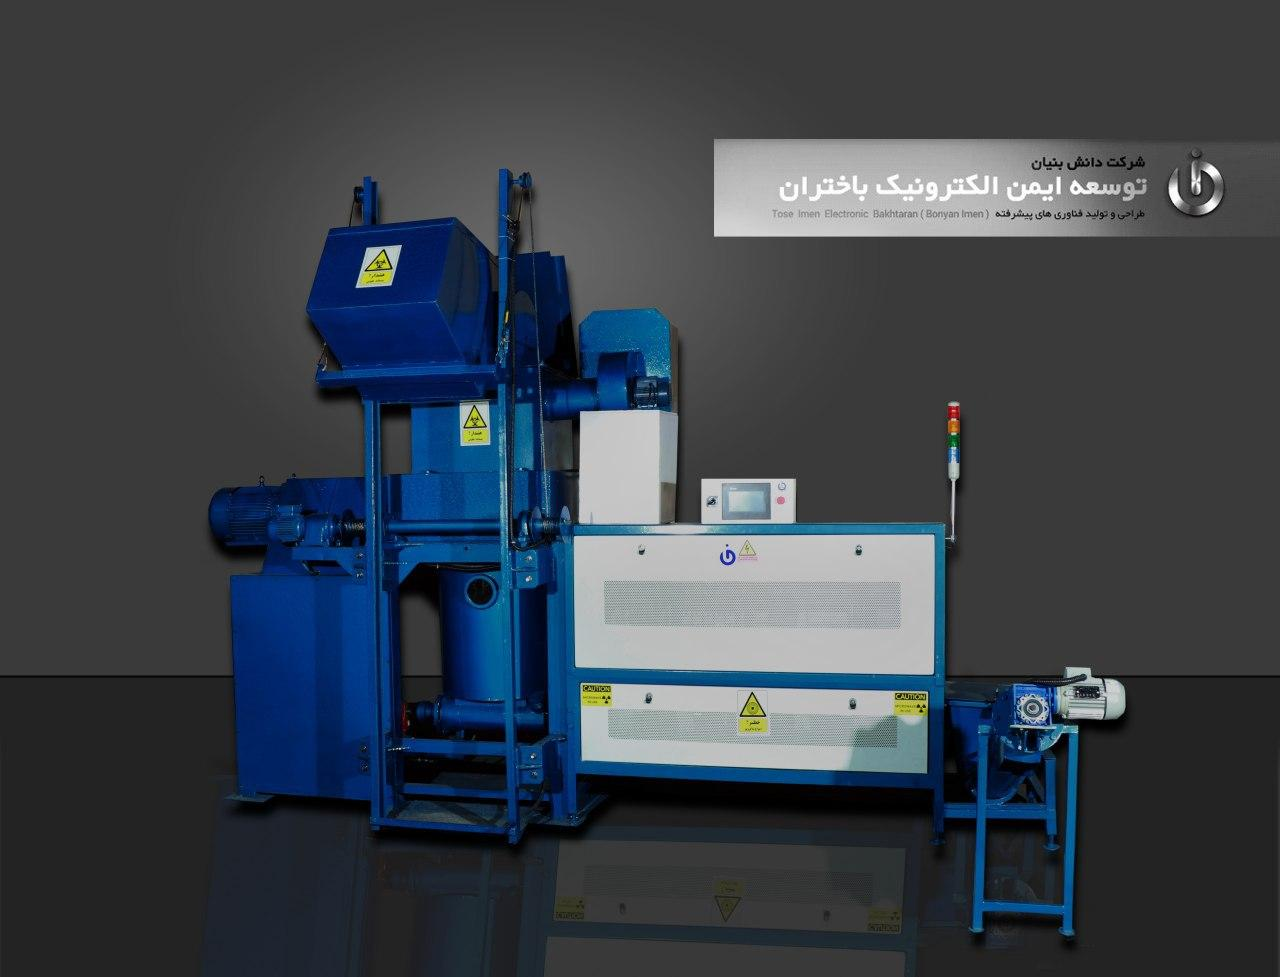 High advanced medical waste disinfection system by microwave technology with internal shredder